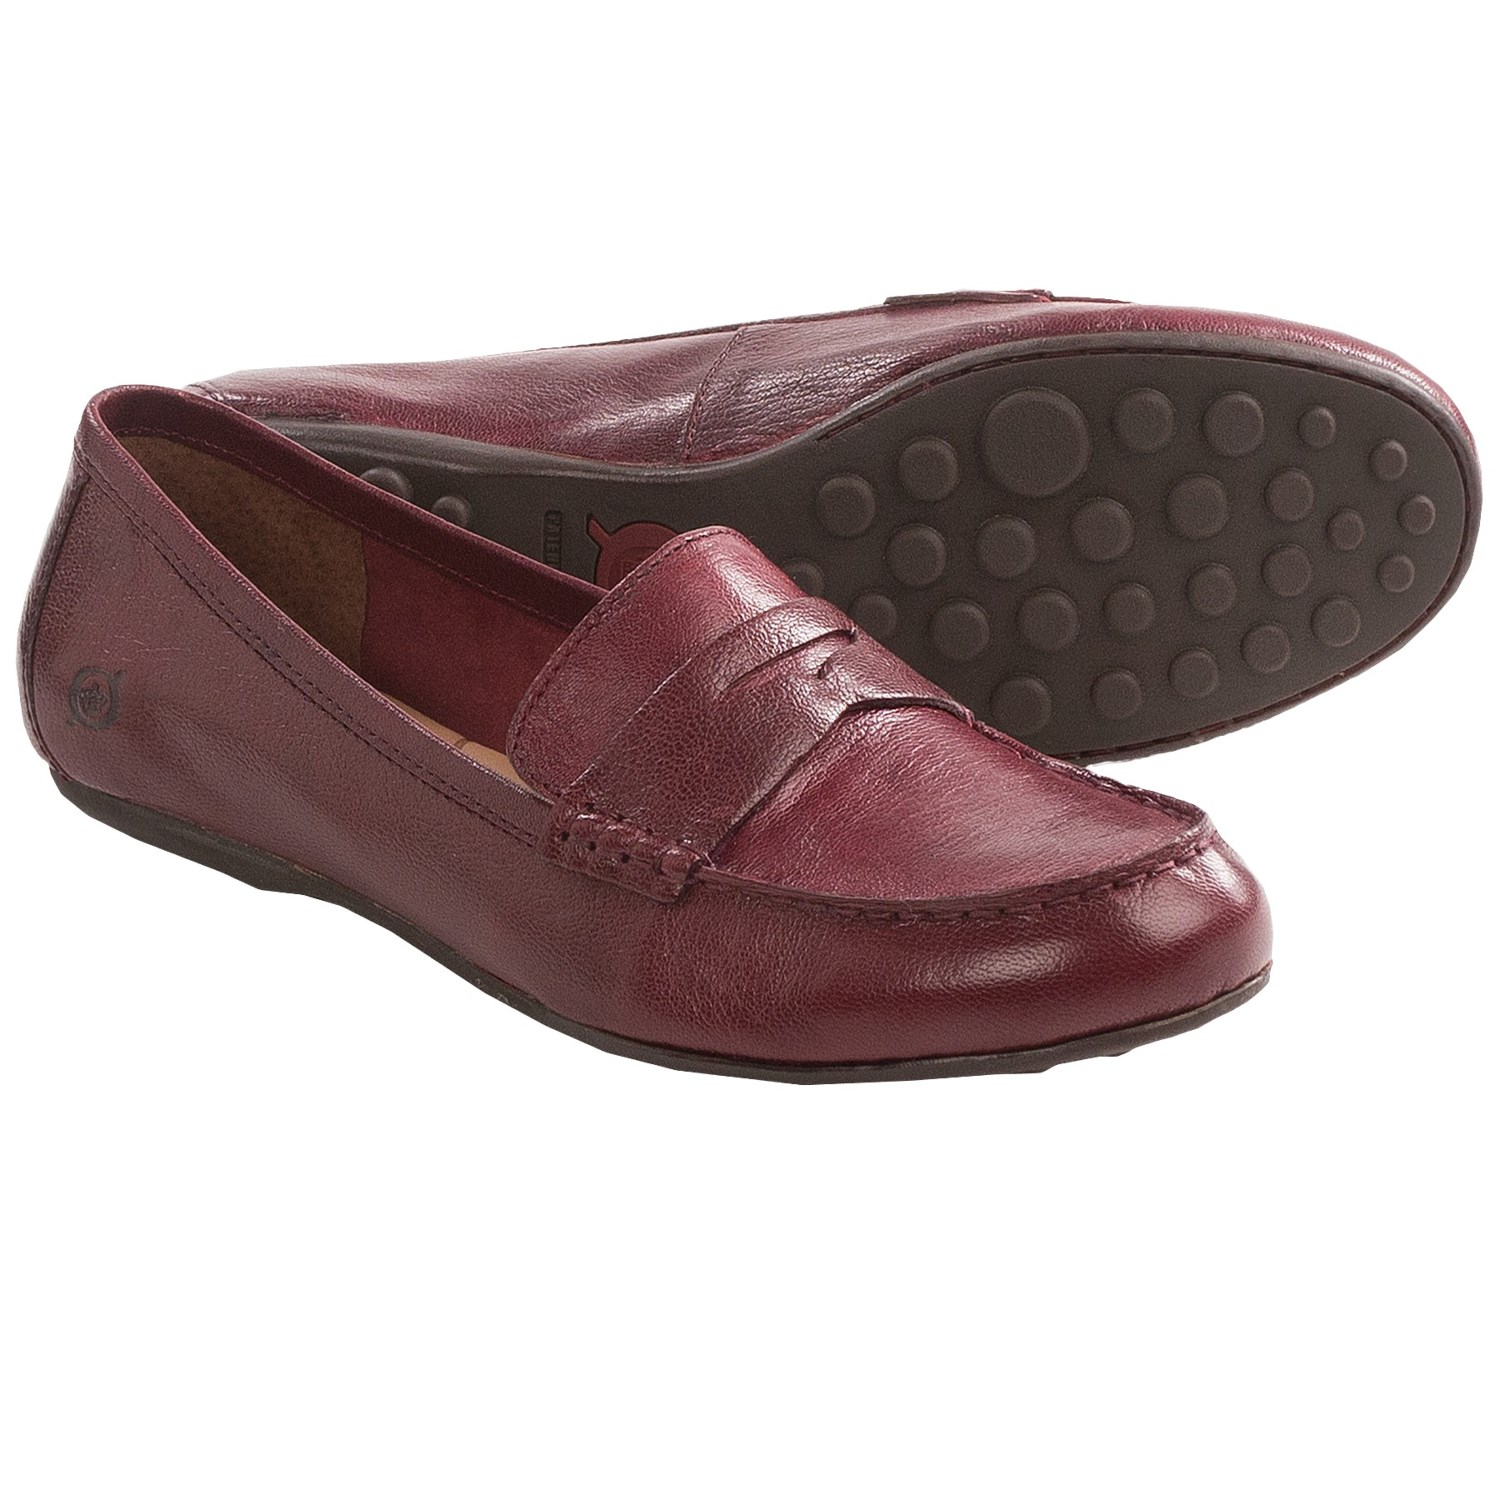 Born Dinah Penny Loafer Shoes - Leather (For Women) in Red